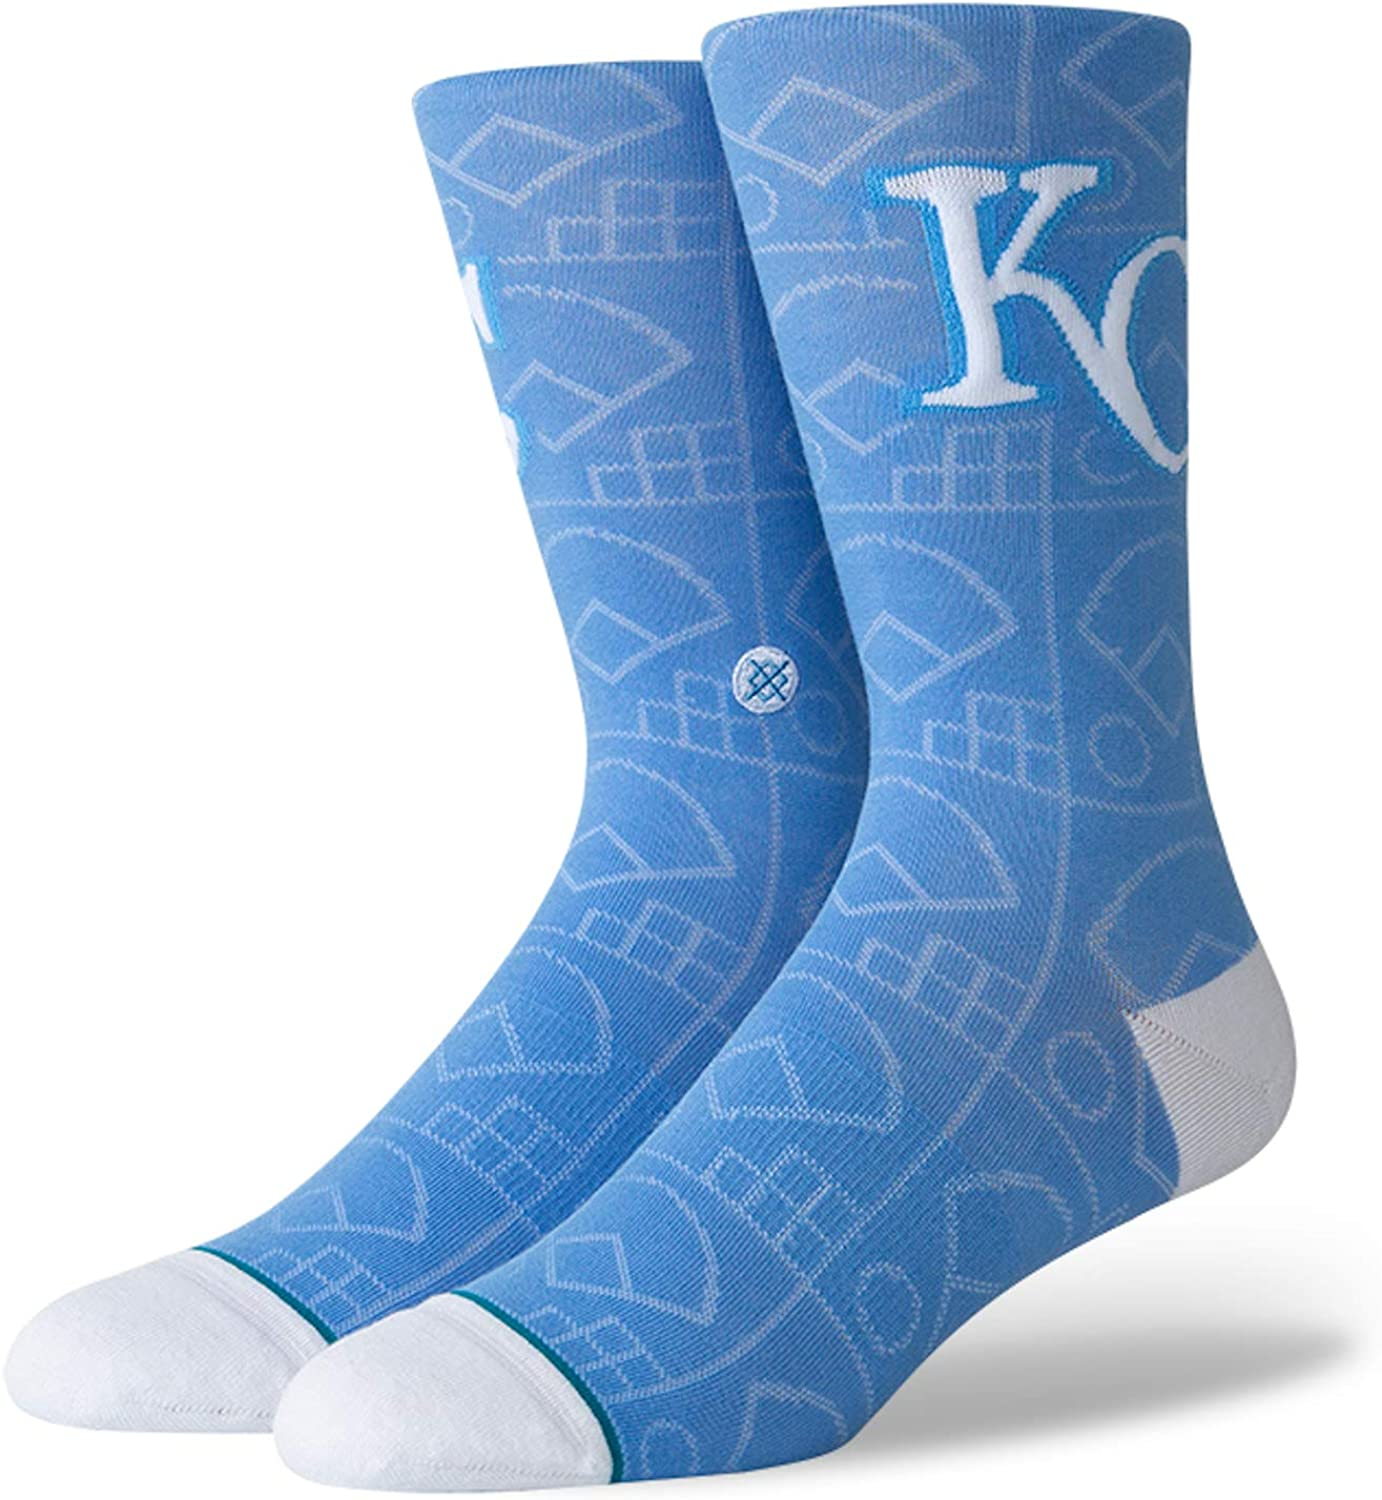 Stance Scorebook MLB Team Baseball Socks Royals, Large